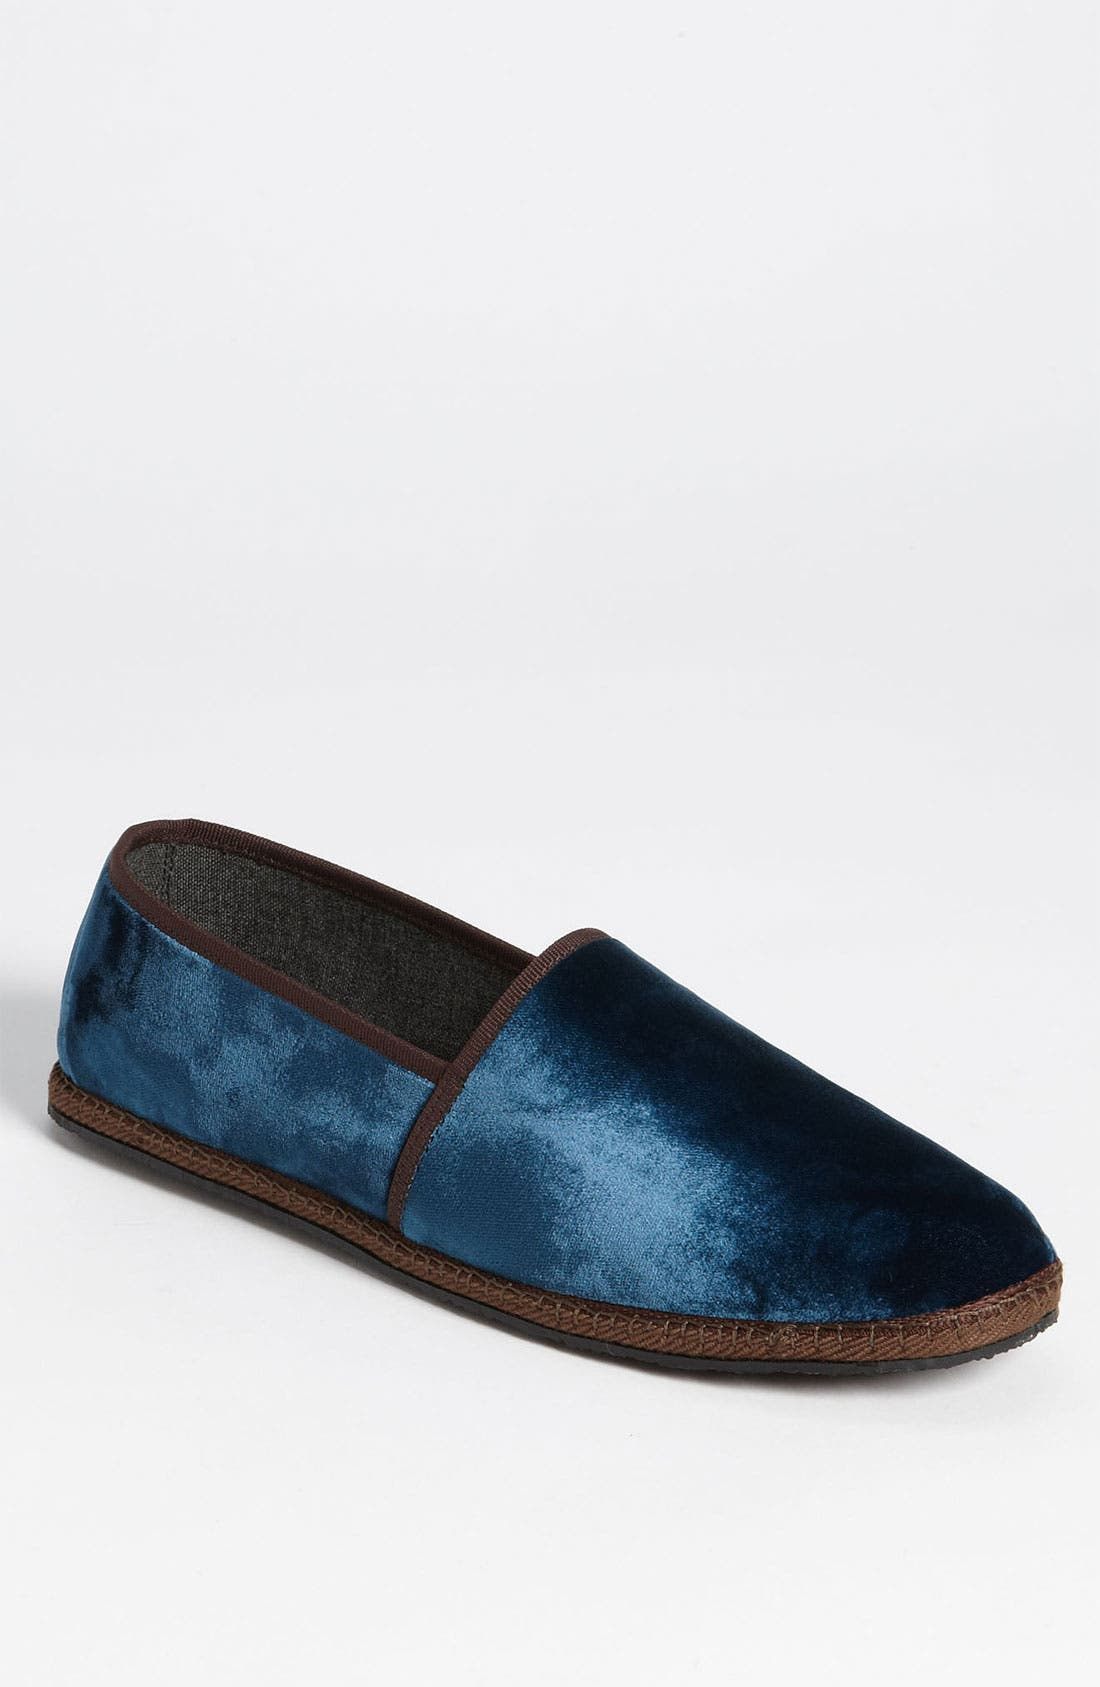 Main Image - Salvatore Ferragamo 'Adone' Velvet Slip On